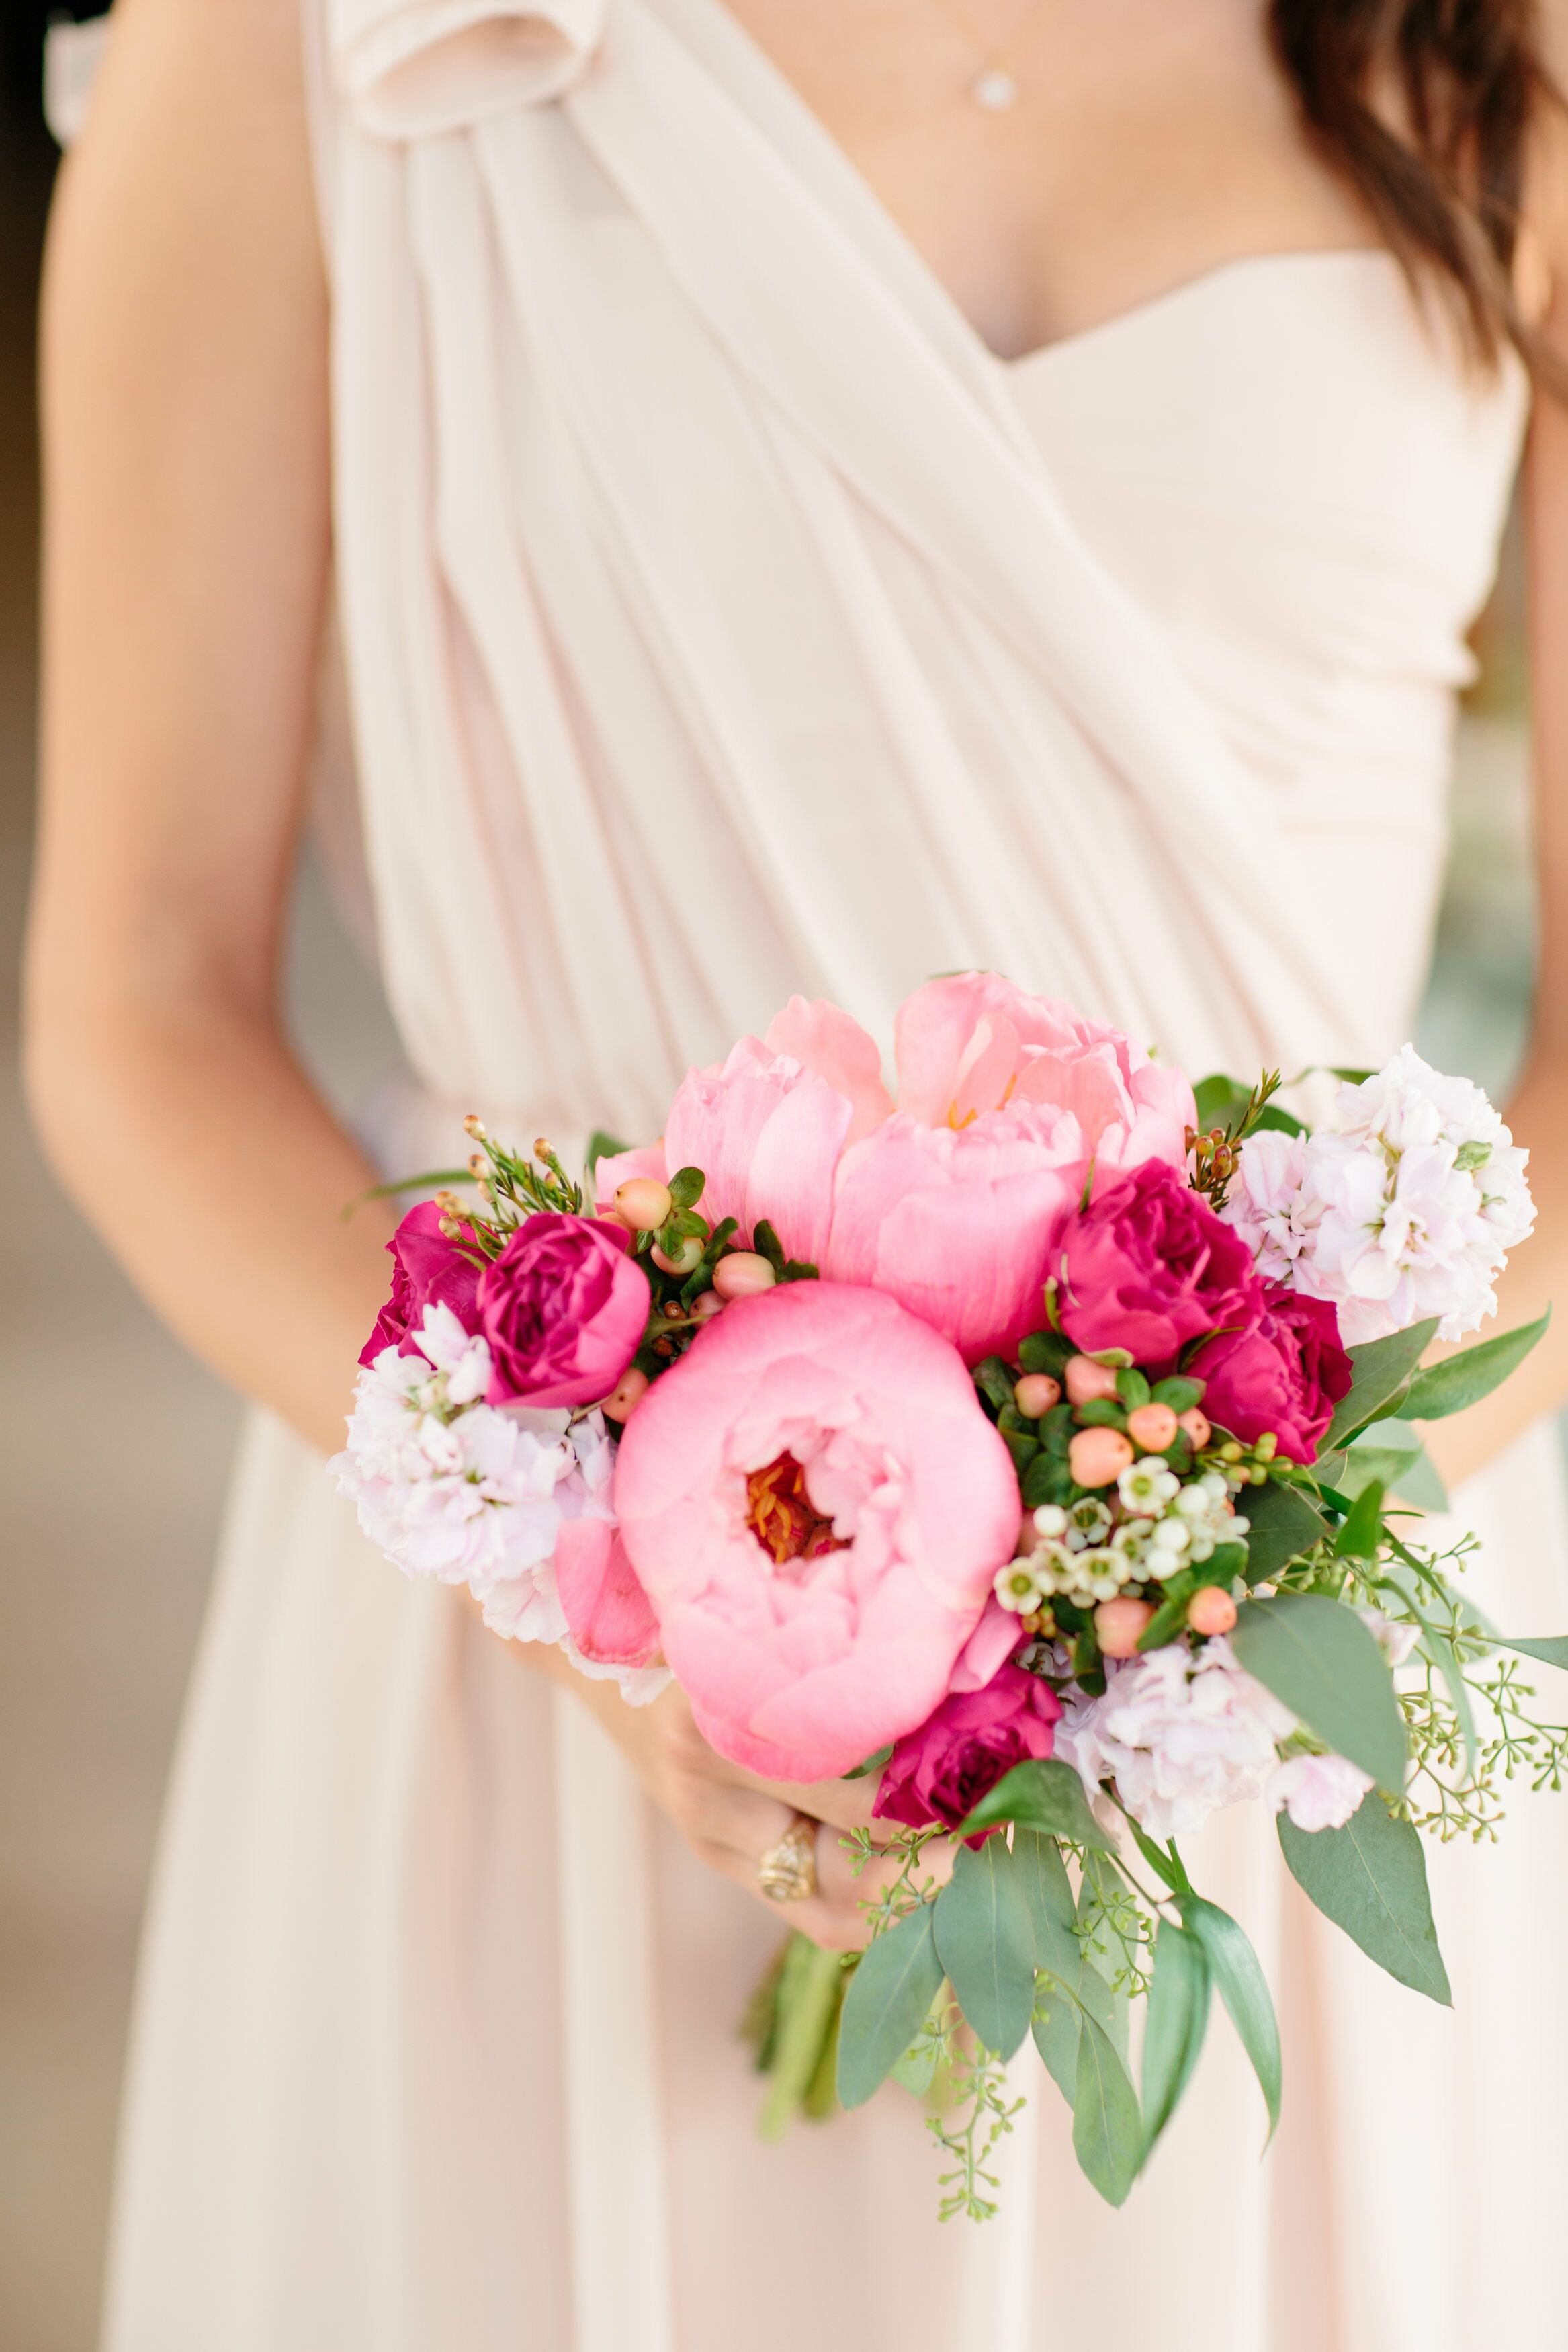 Florists in Houston, TX - The Knot